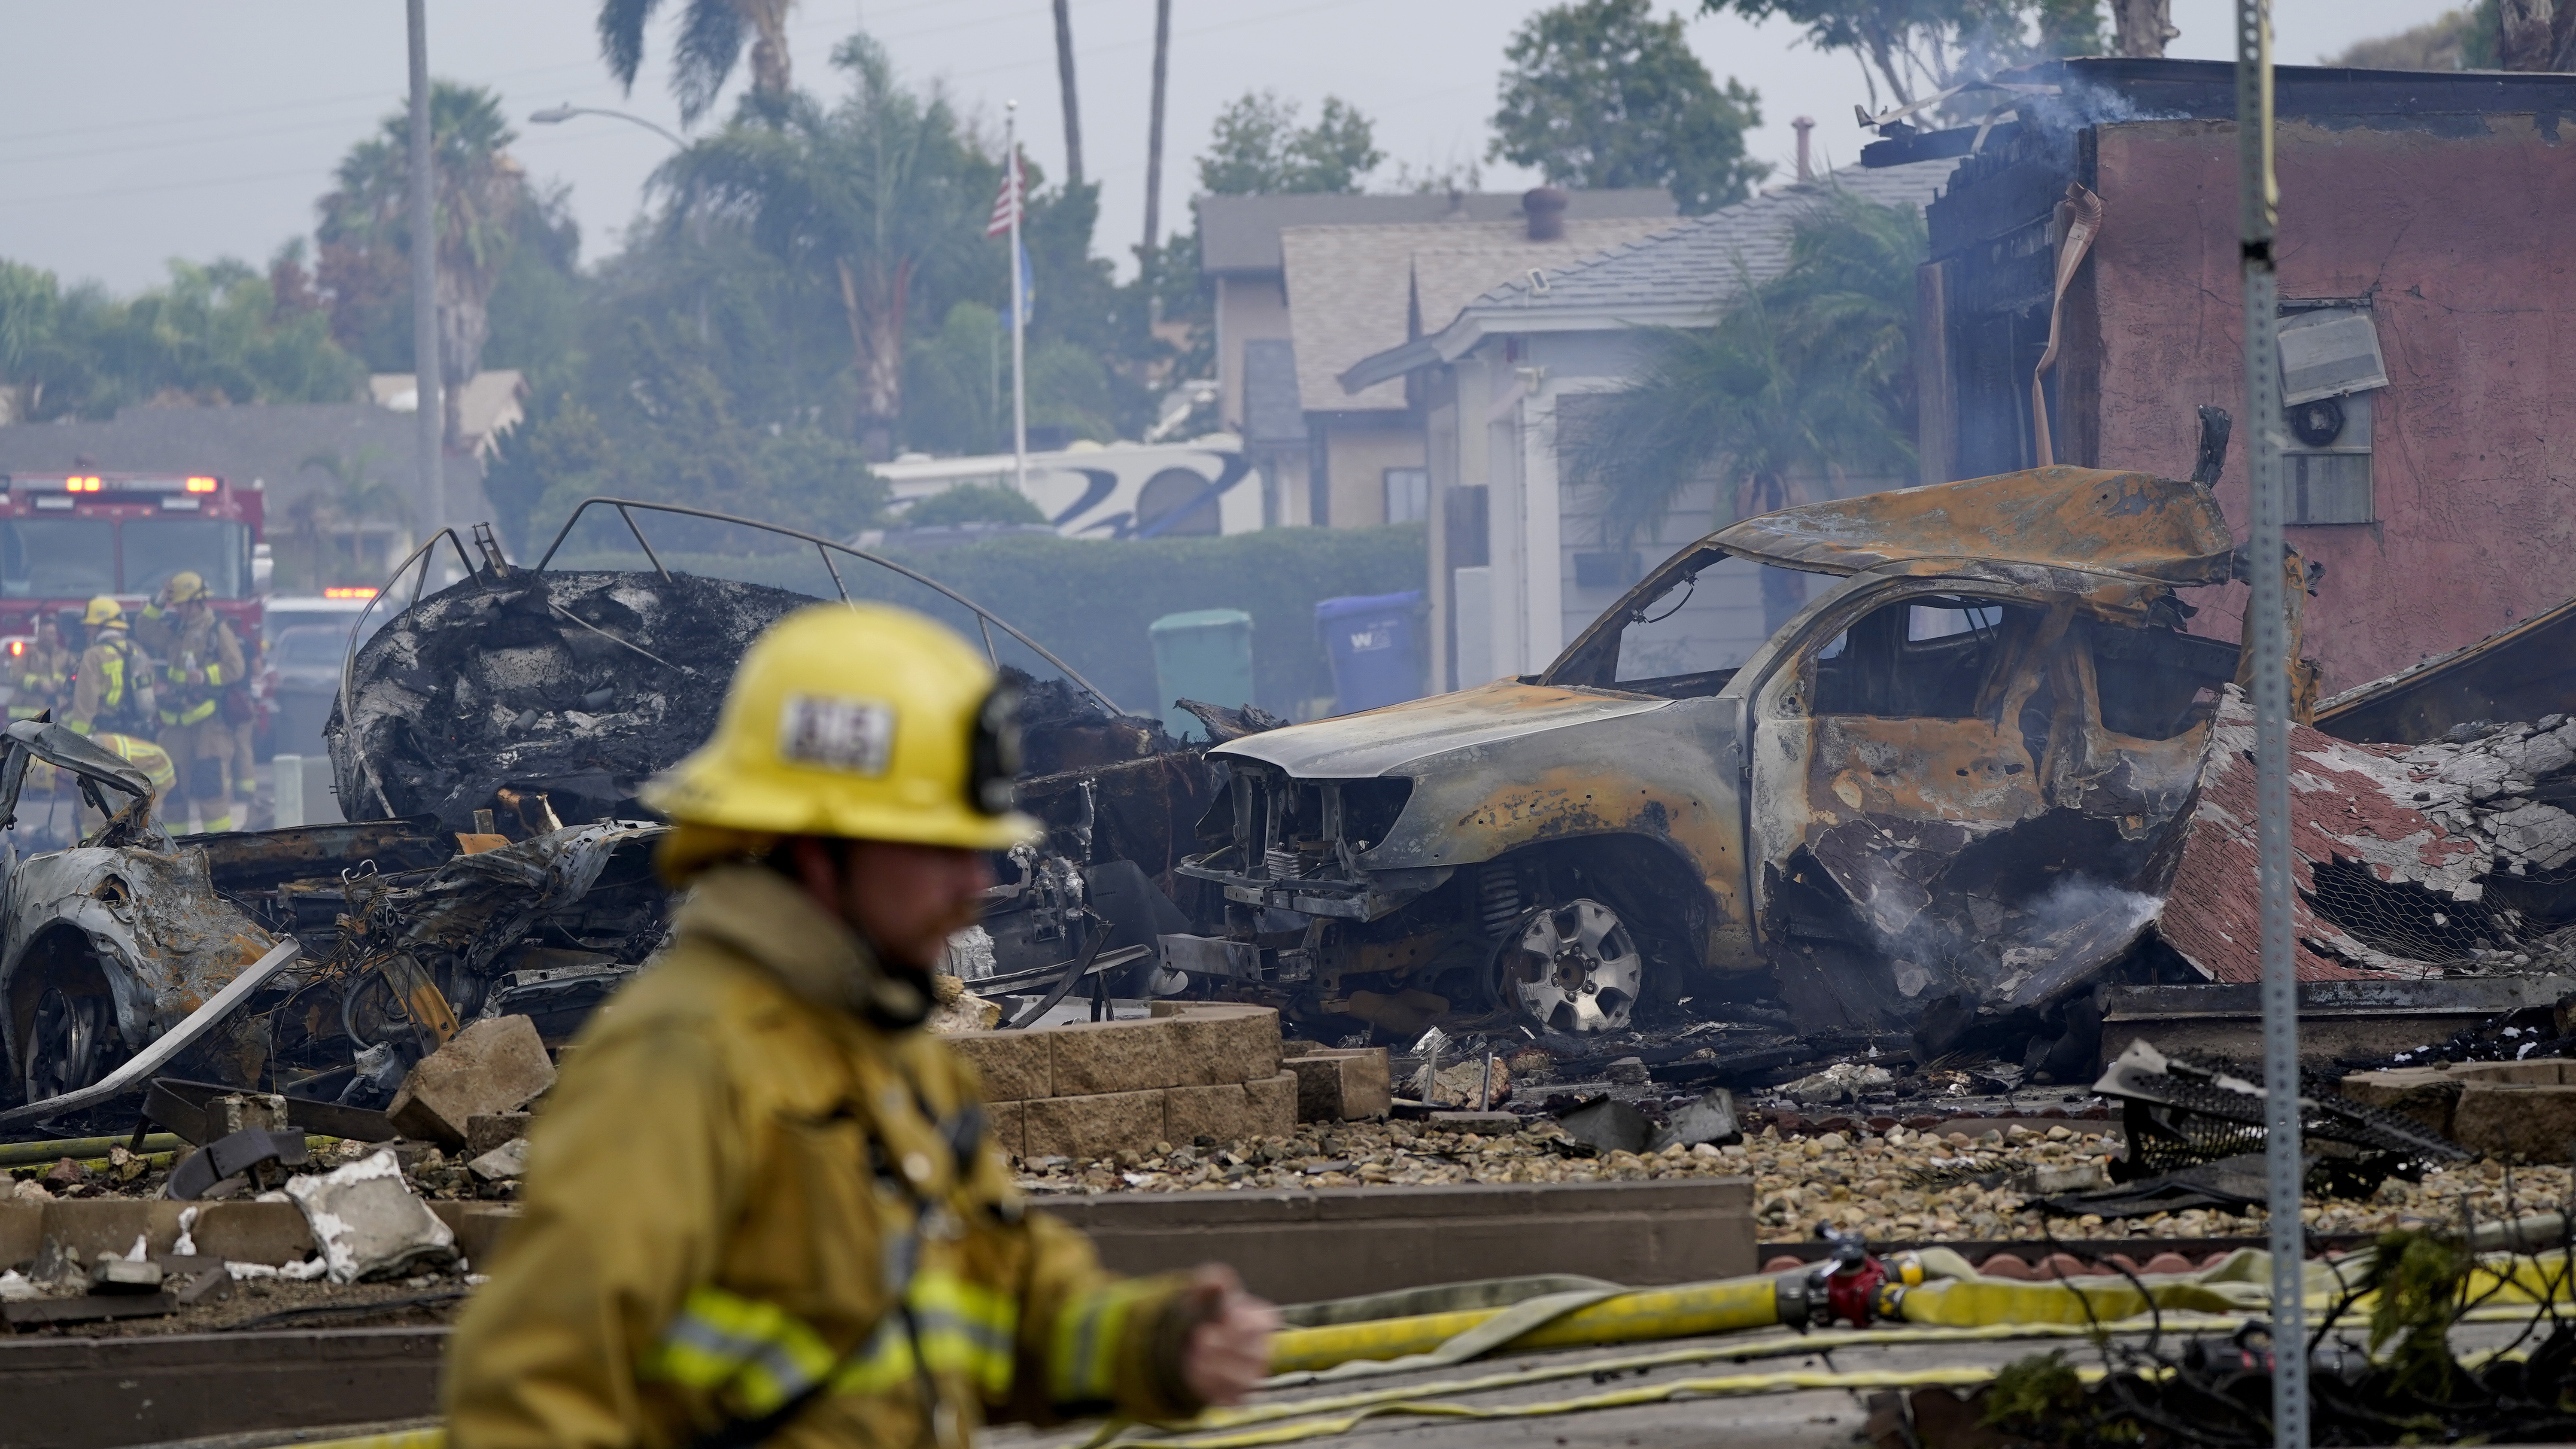 Fire crews work the scene of a small plane crash on Monday in Santee, Calif. At least two people were killed and two others were injured when the plane crashed into the suburban neighborhood, setting two homes ablaze.